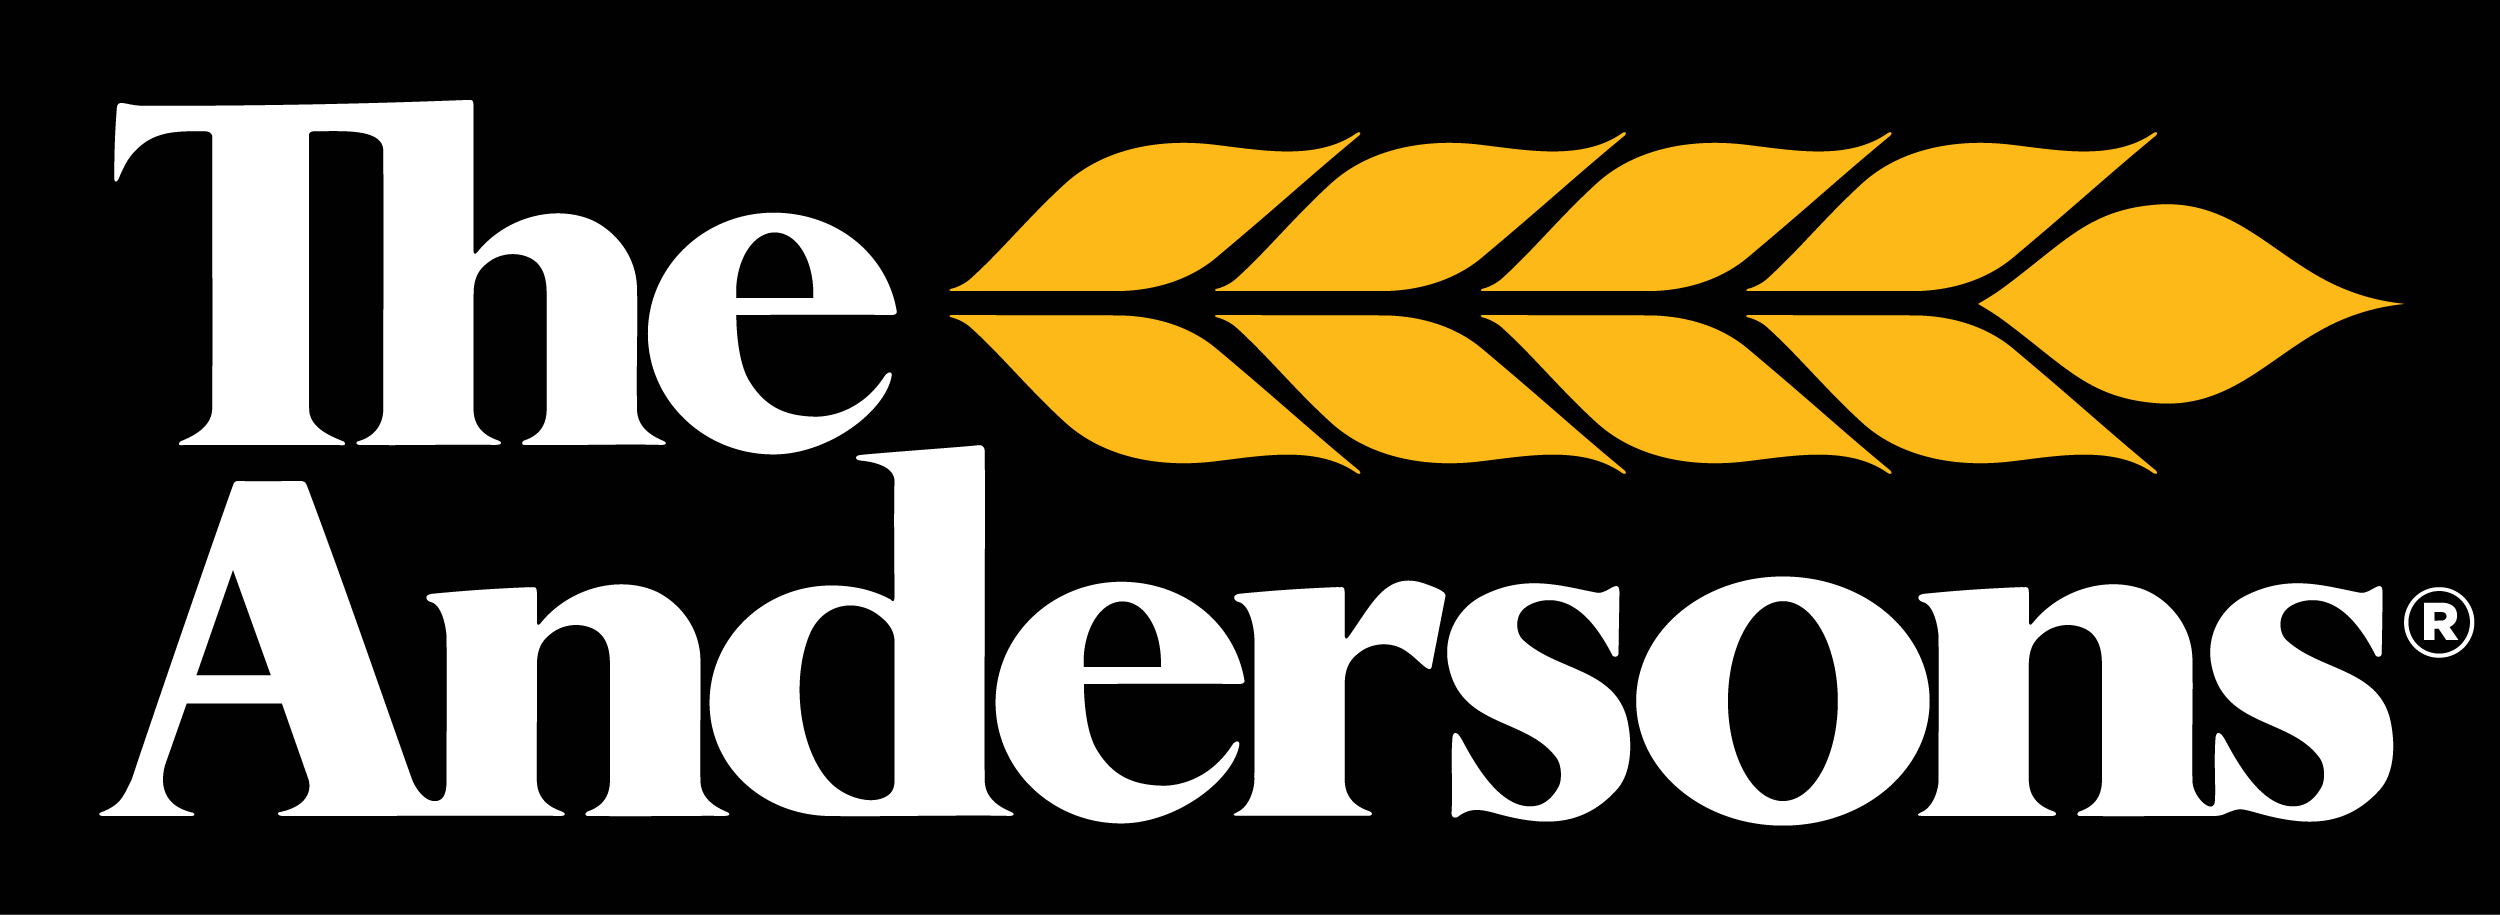 The Andersons color logo